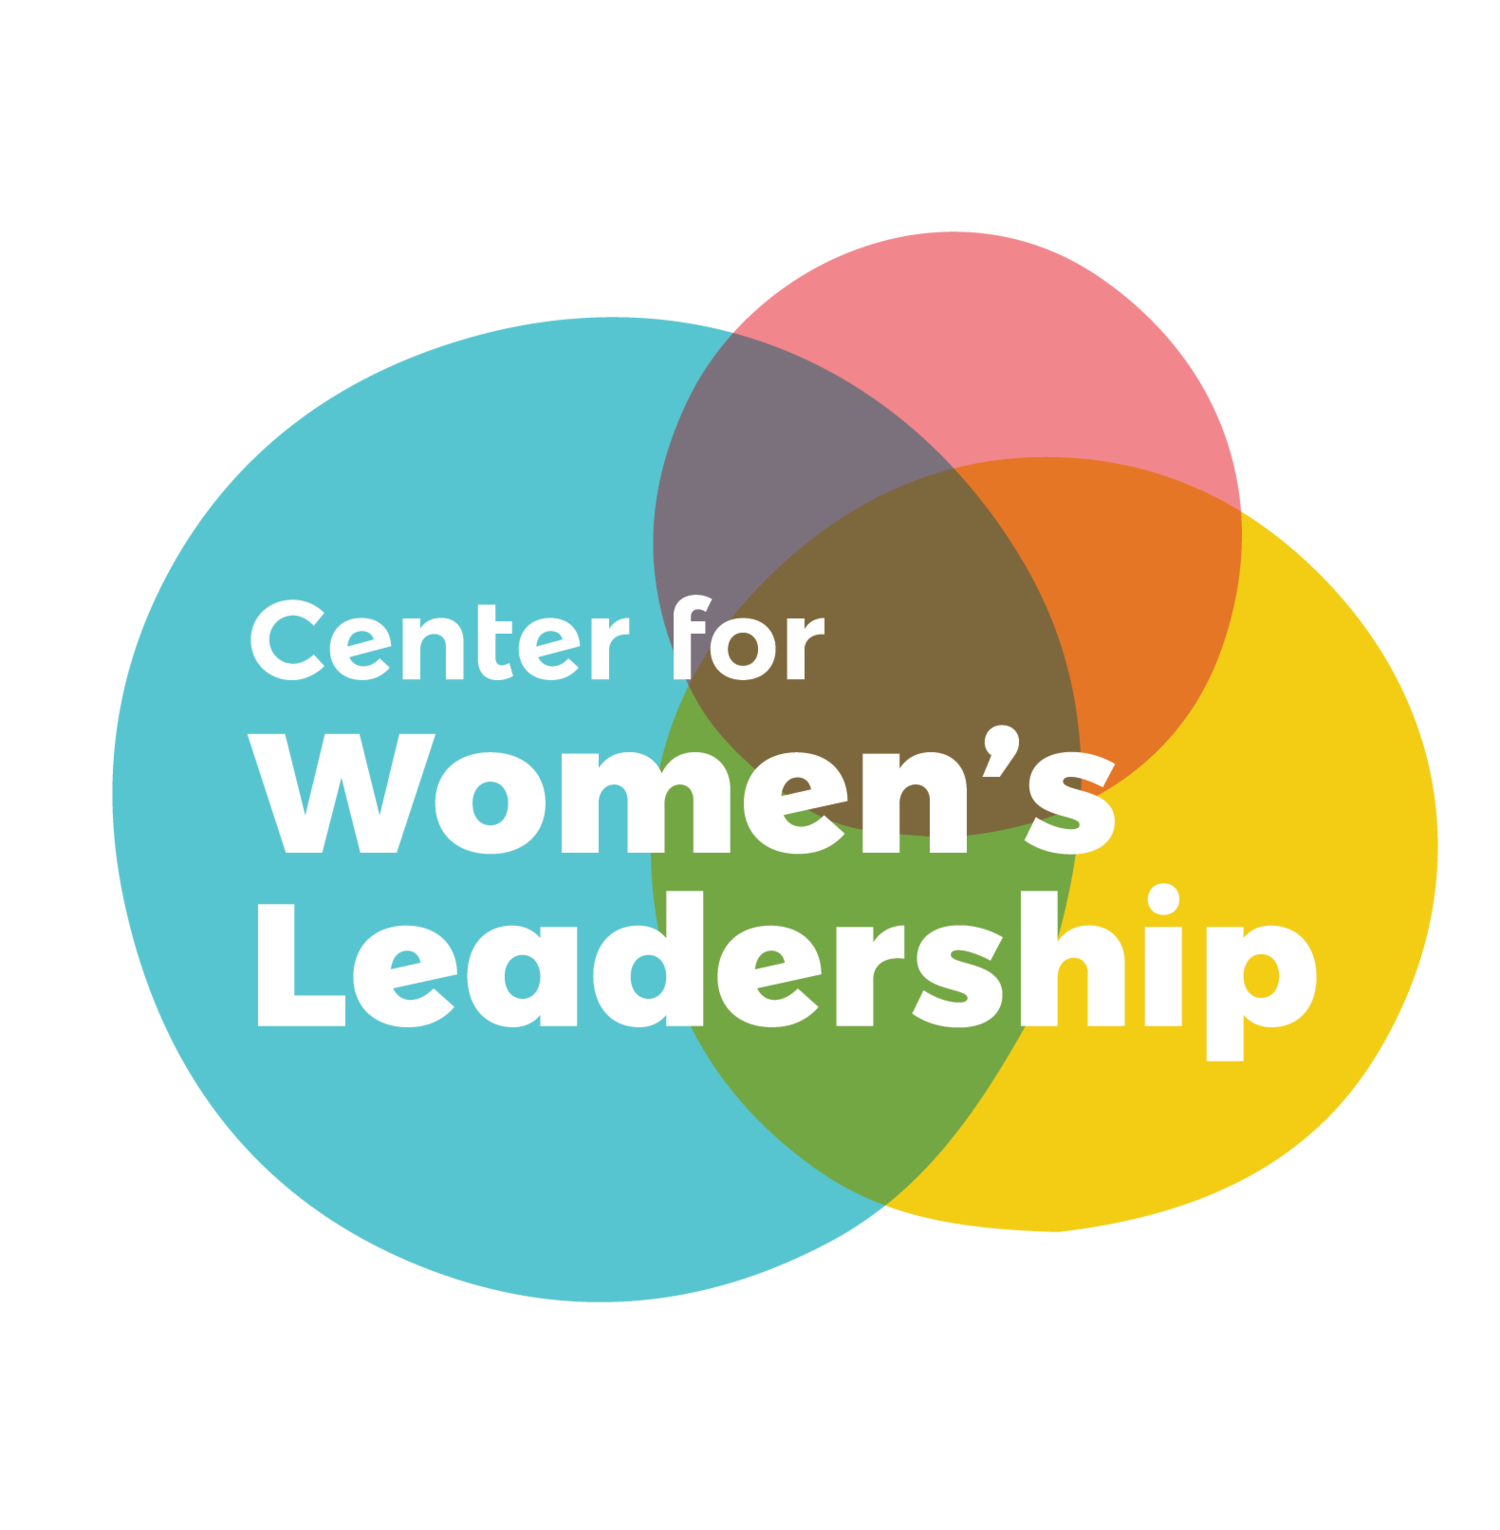 The Center for Women's Leadership